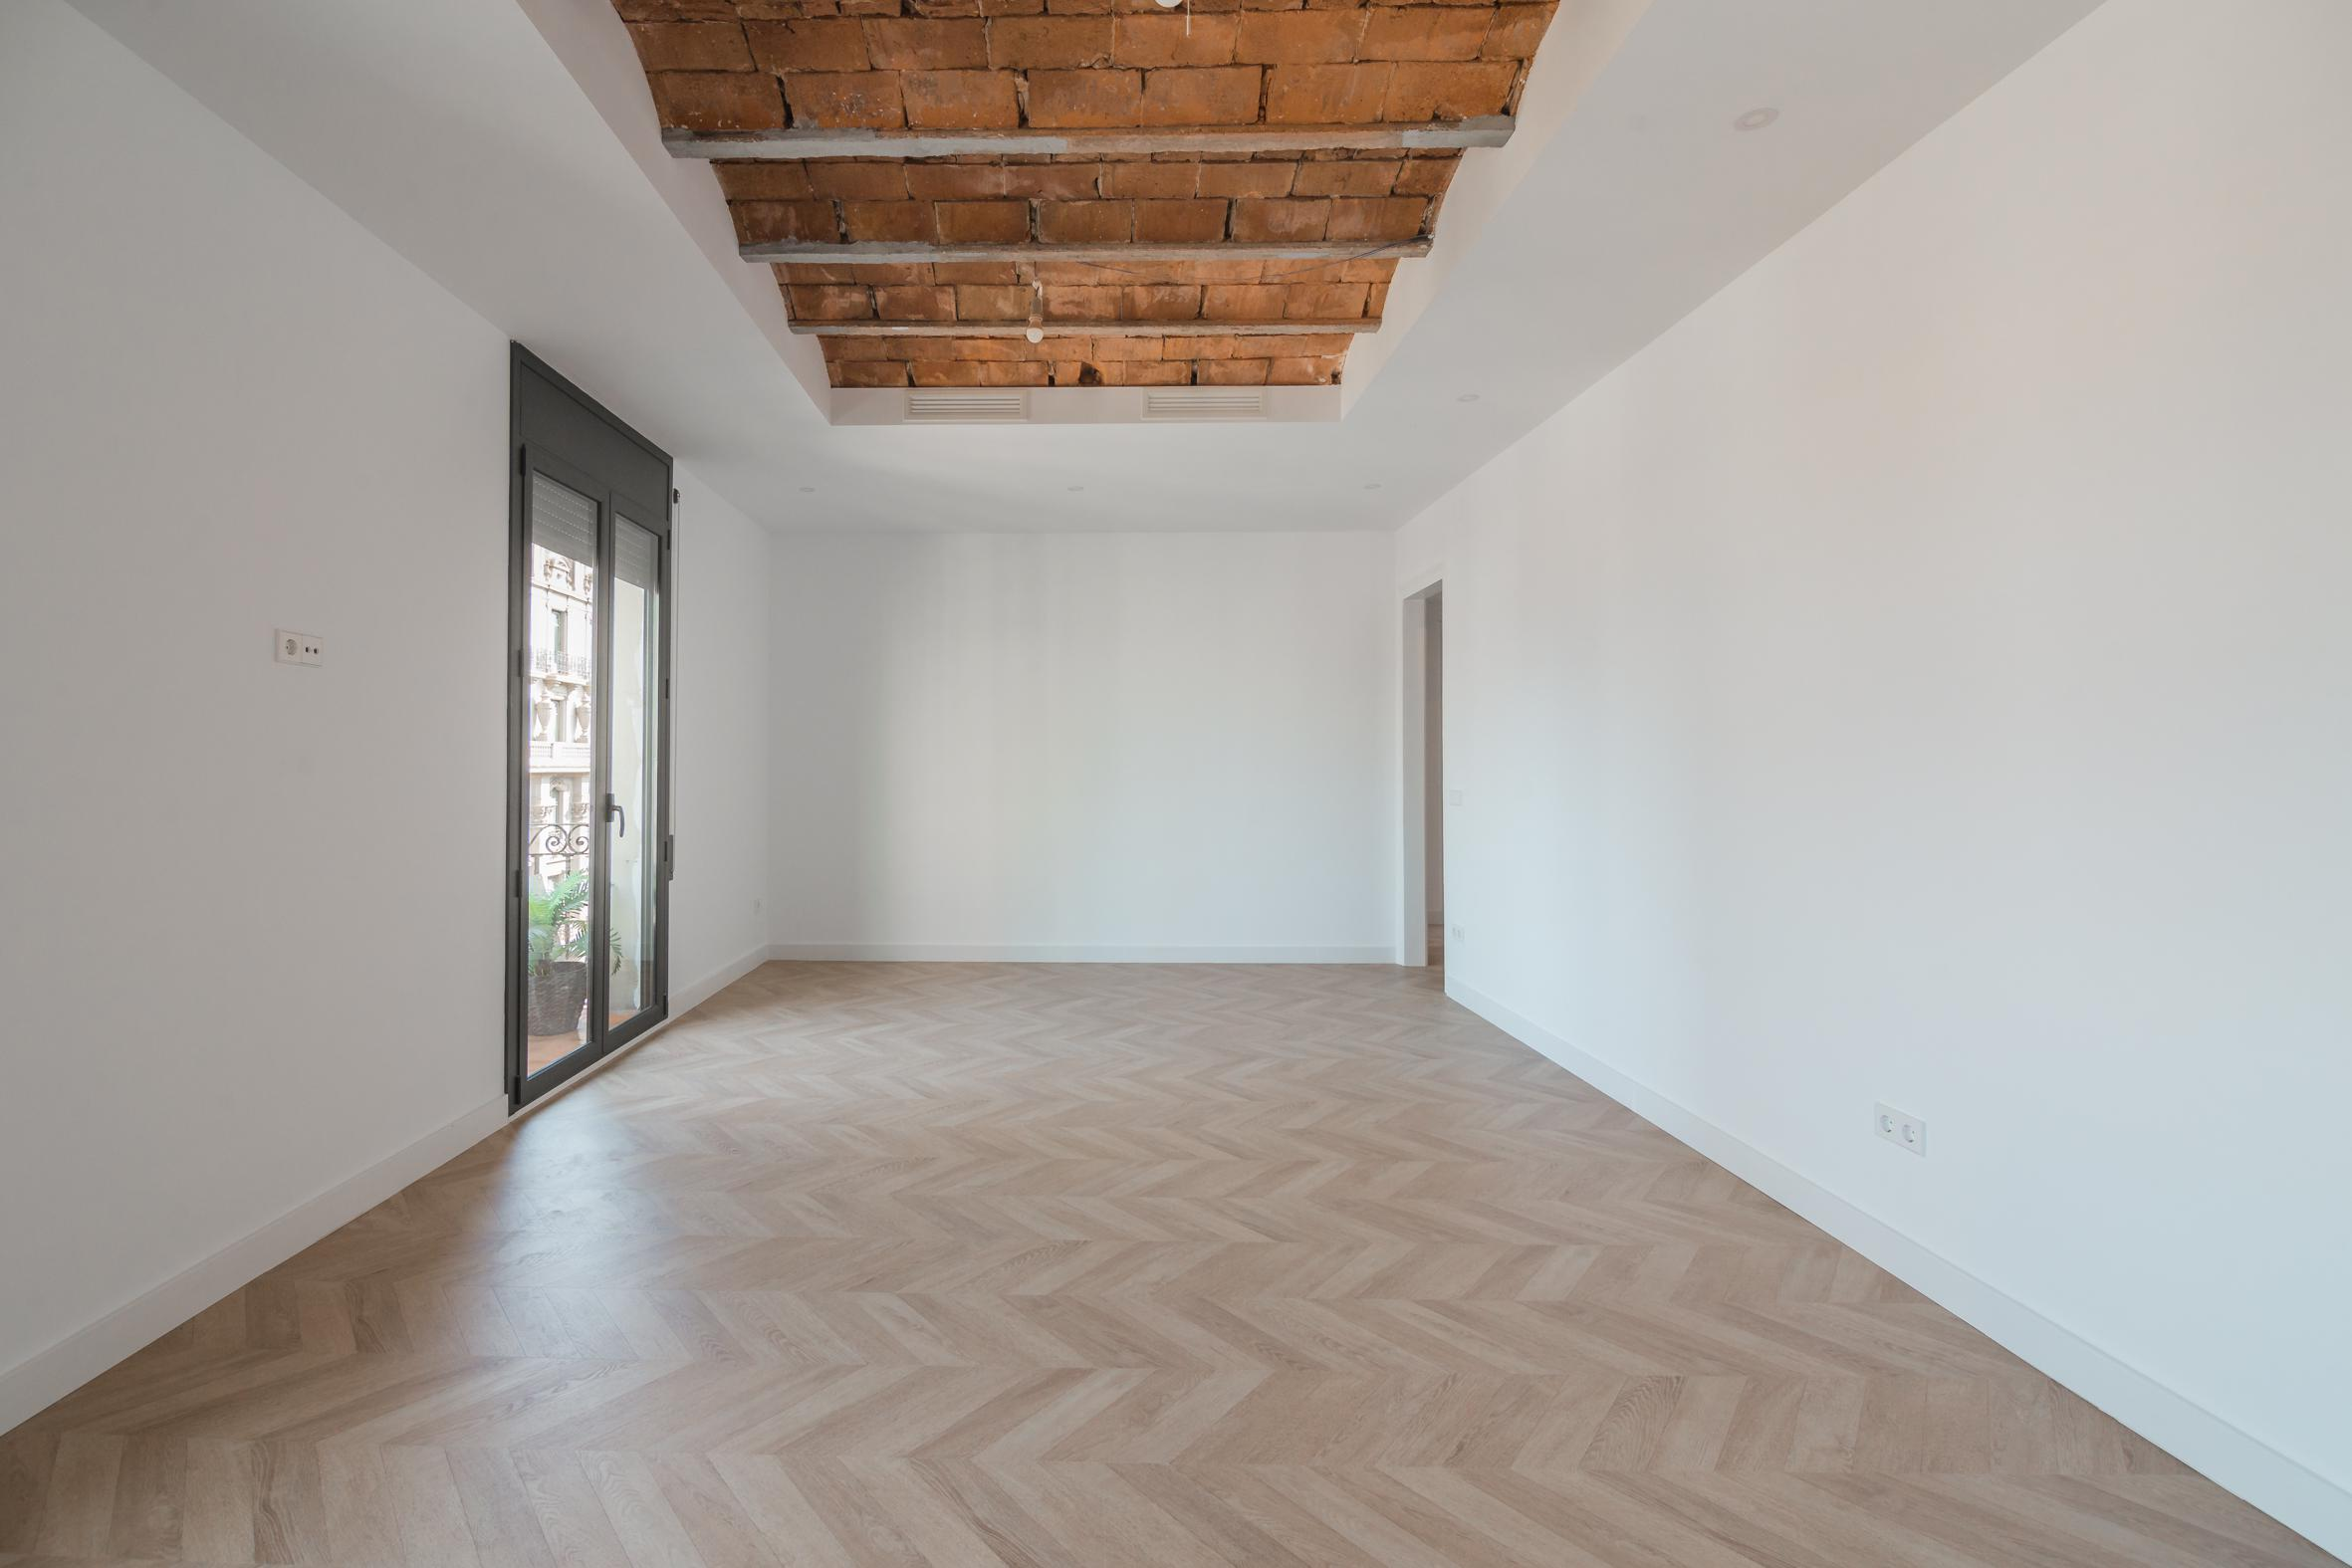 244010 Flat for sale in Ciutat Vella, Barri Gótic 3